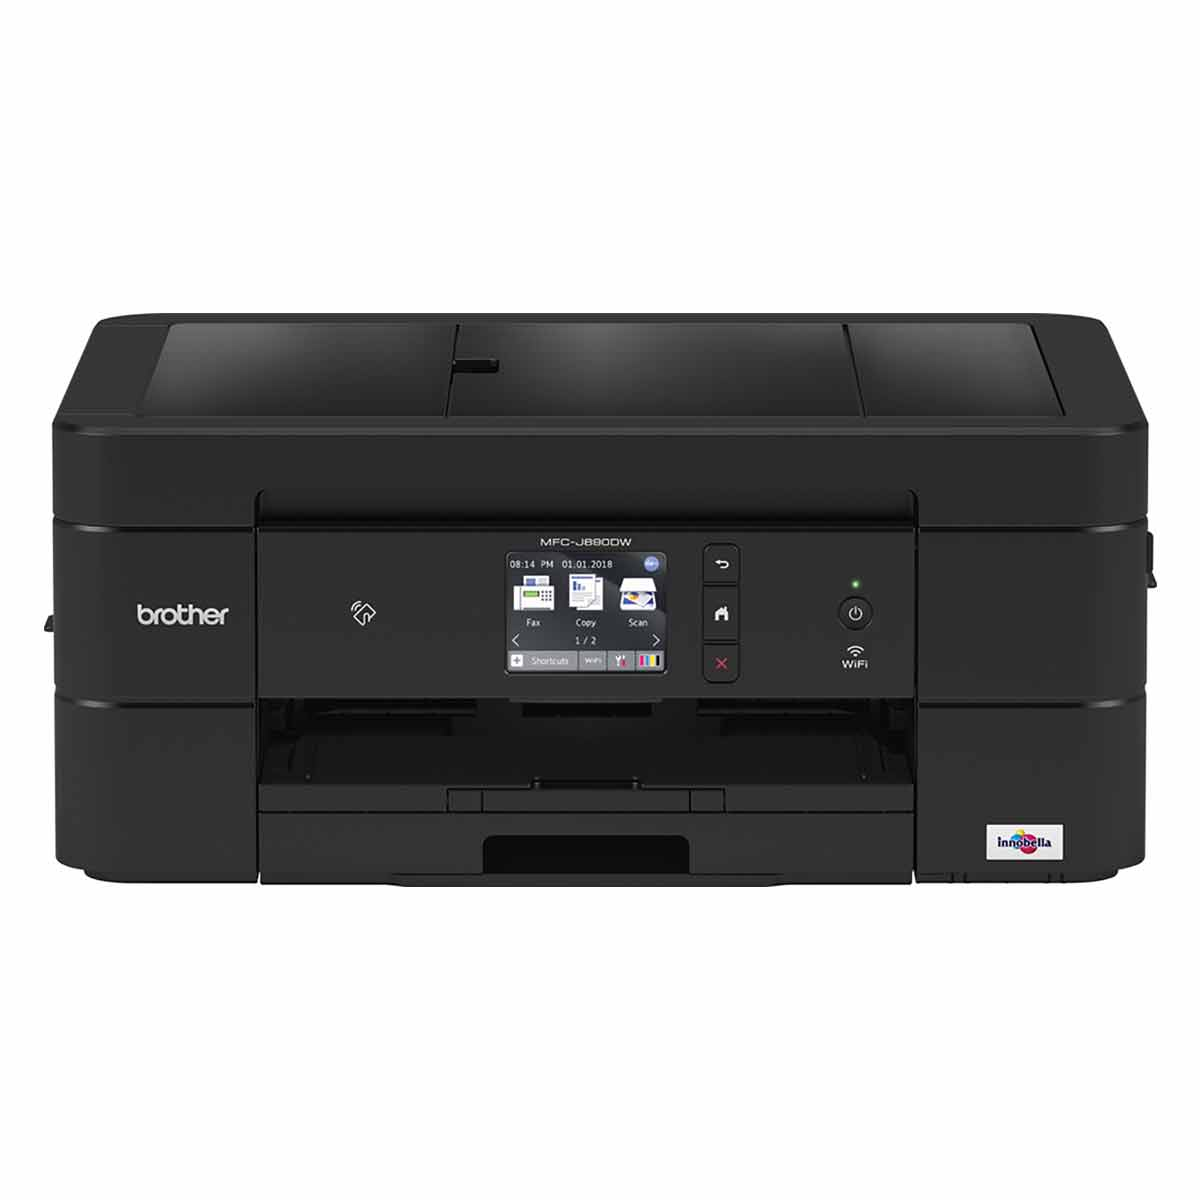 Image of Brother MFCJ890DW All in One Wireless Printer, Black